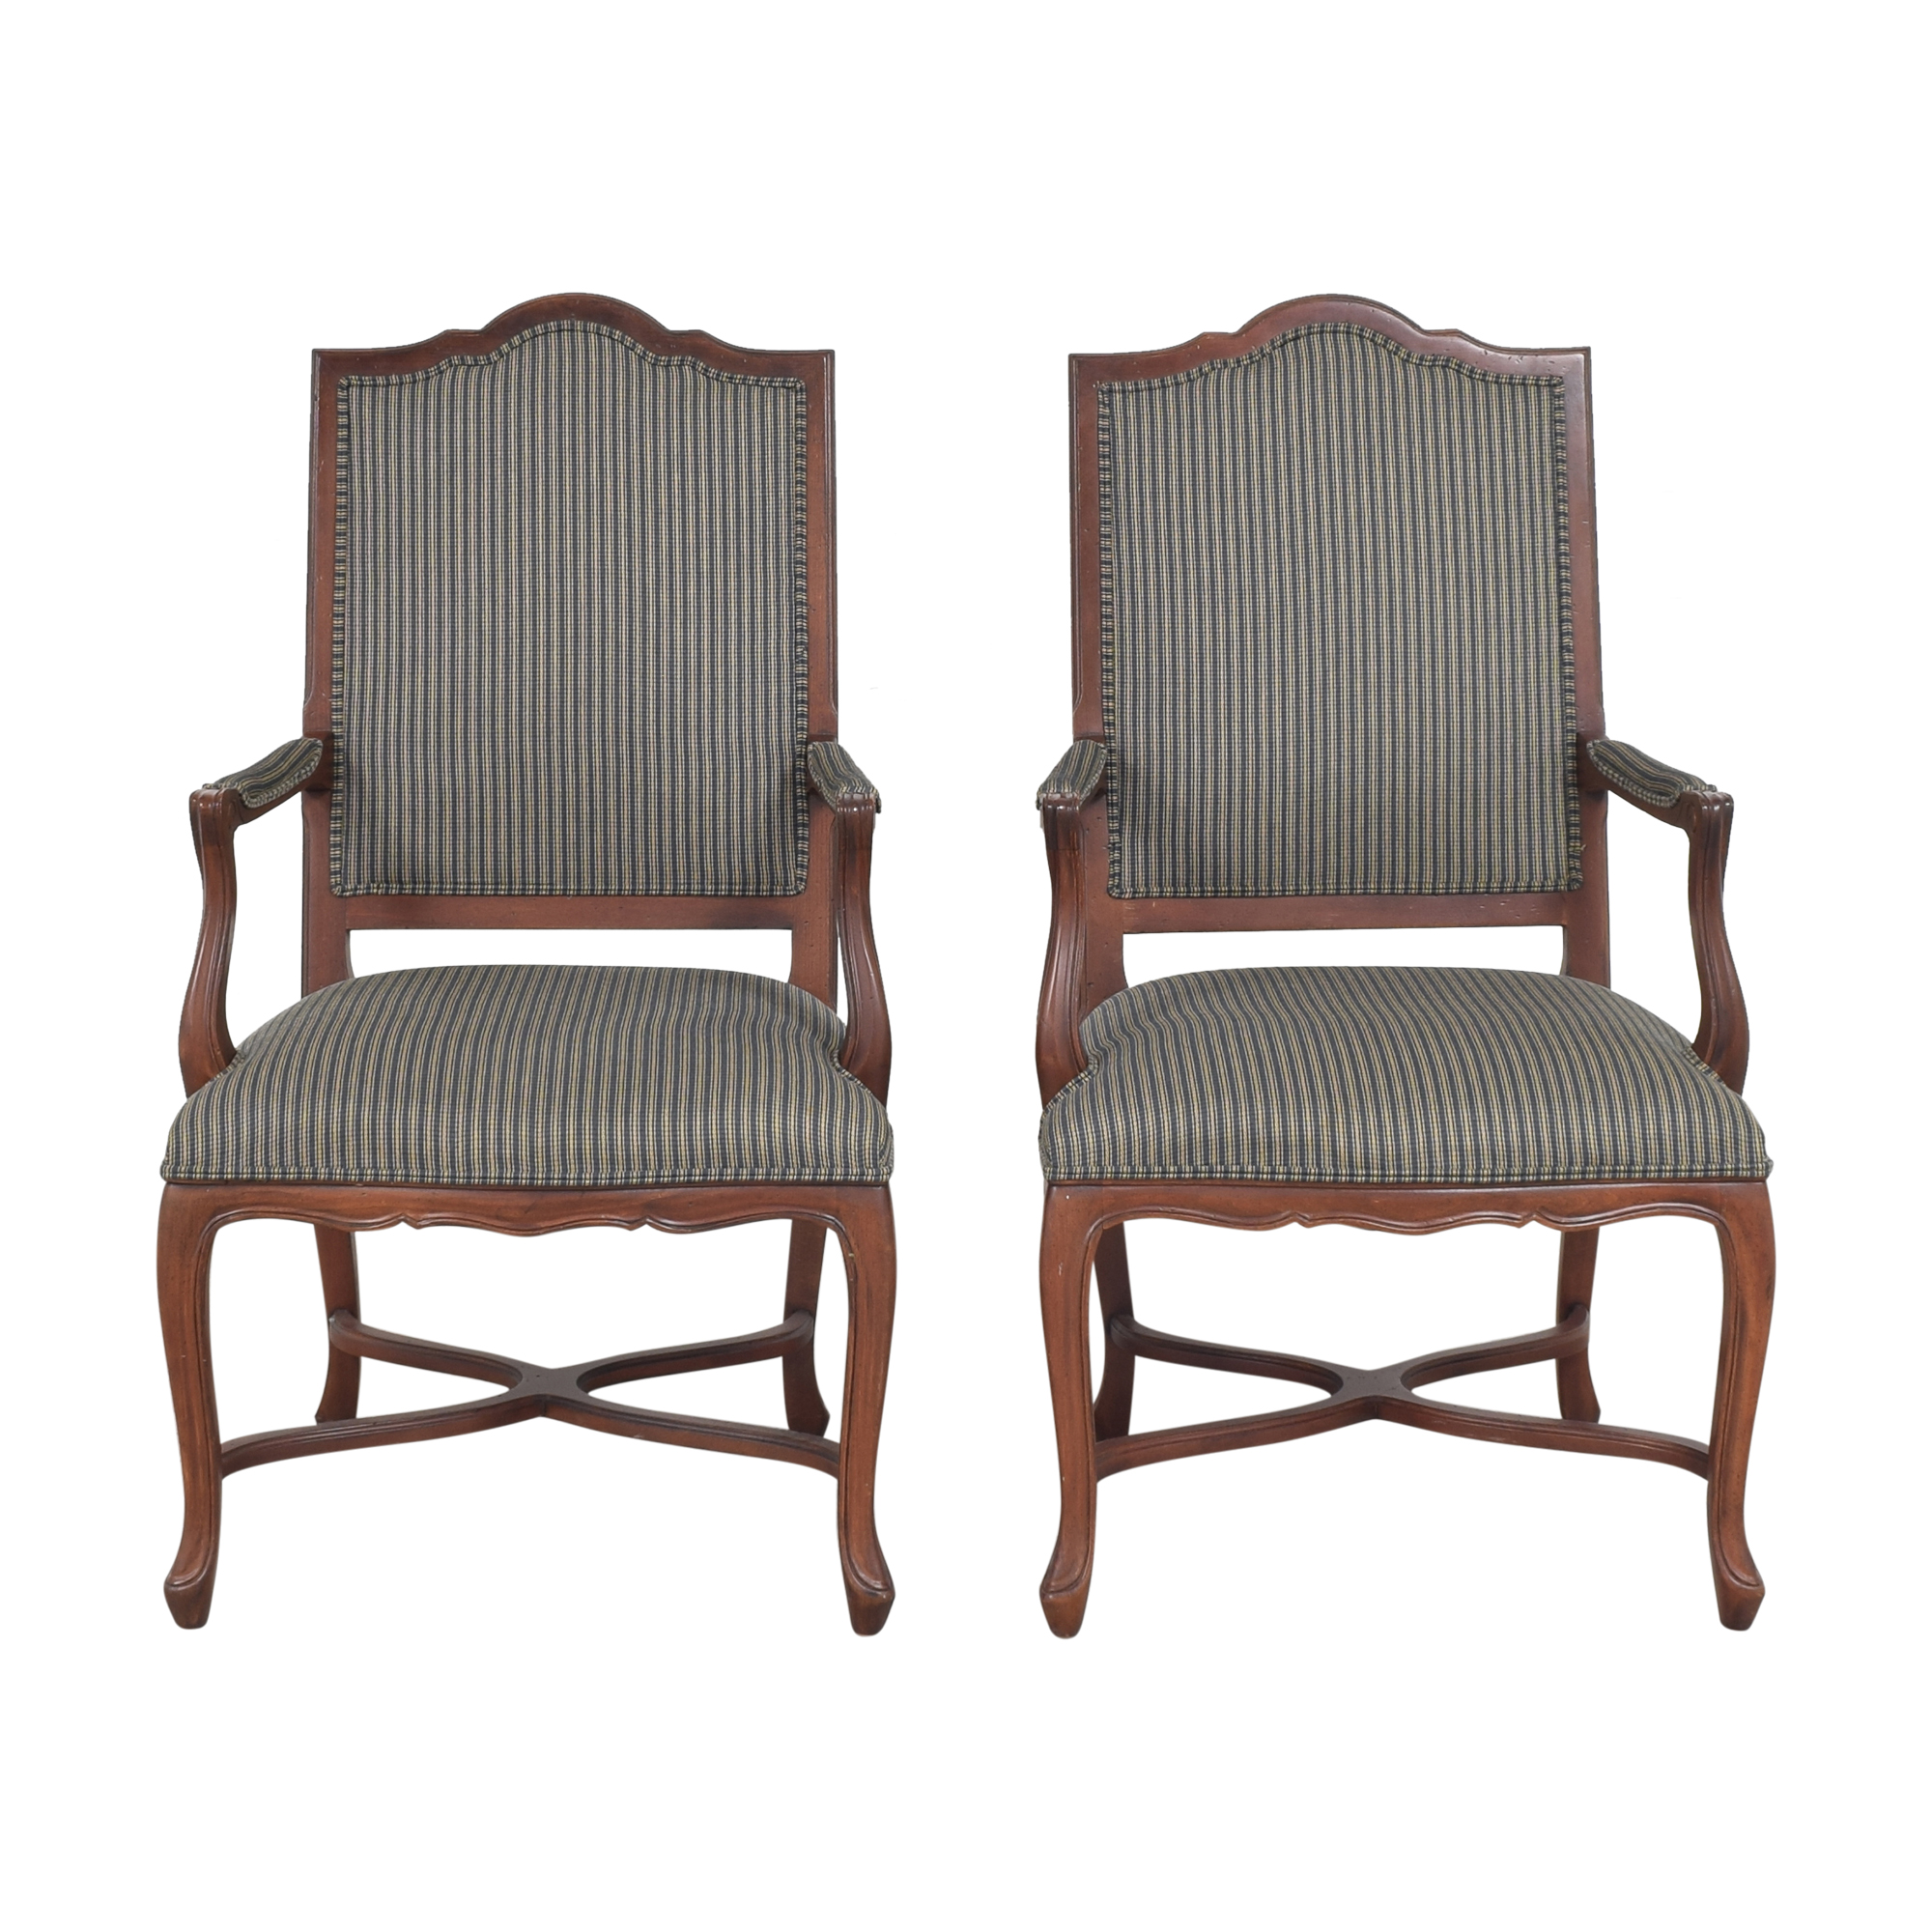 buy Ethan Allen Ethan Allen Dining Arm Chairs online